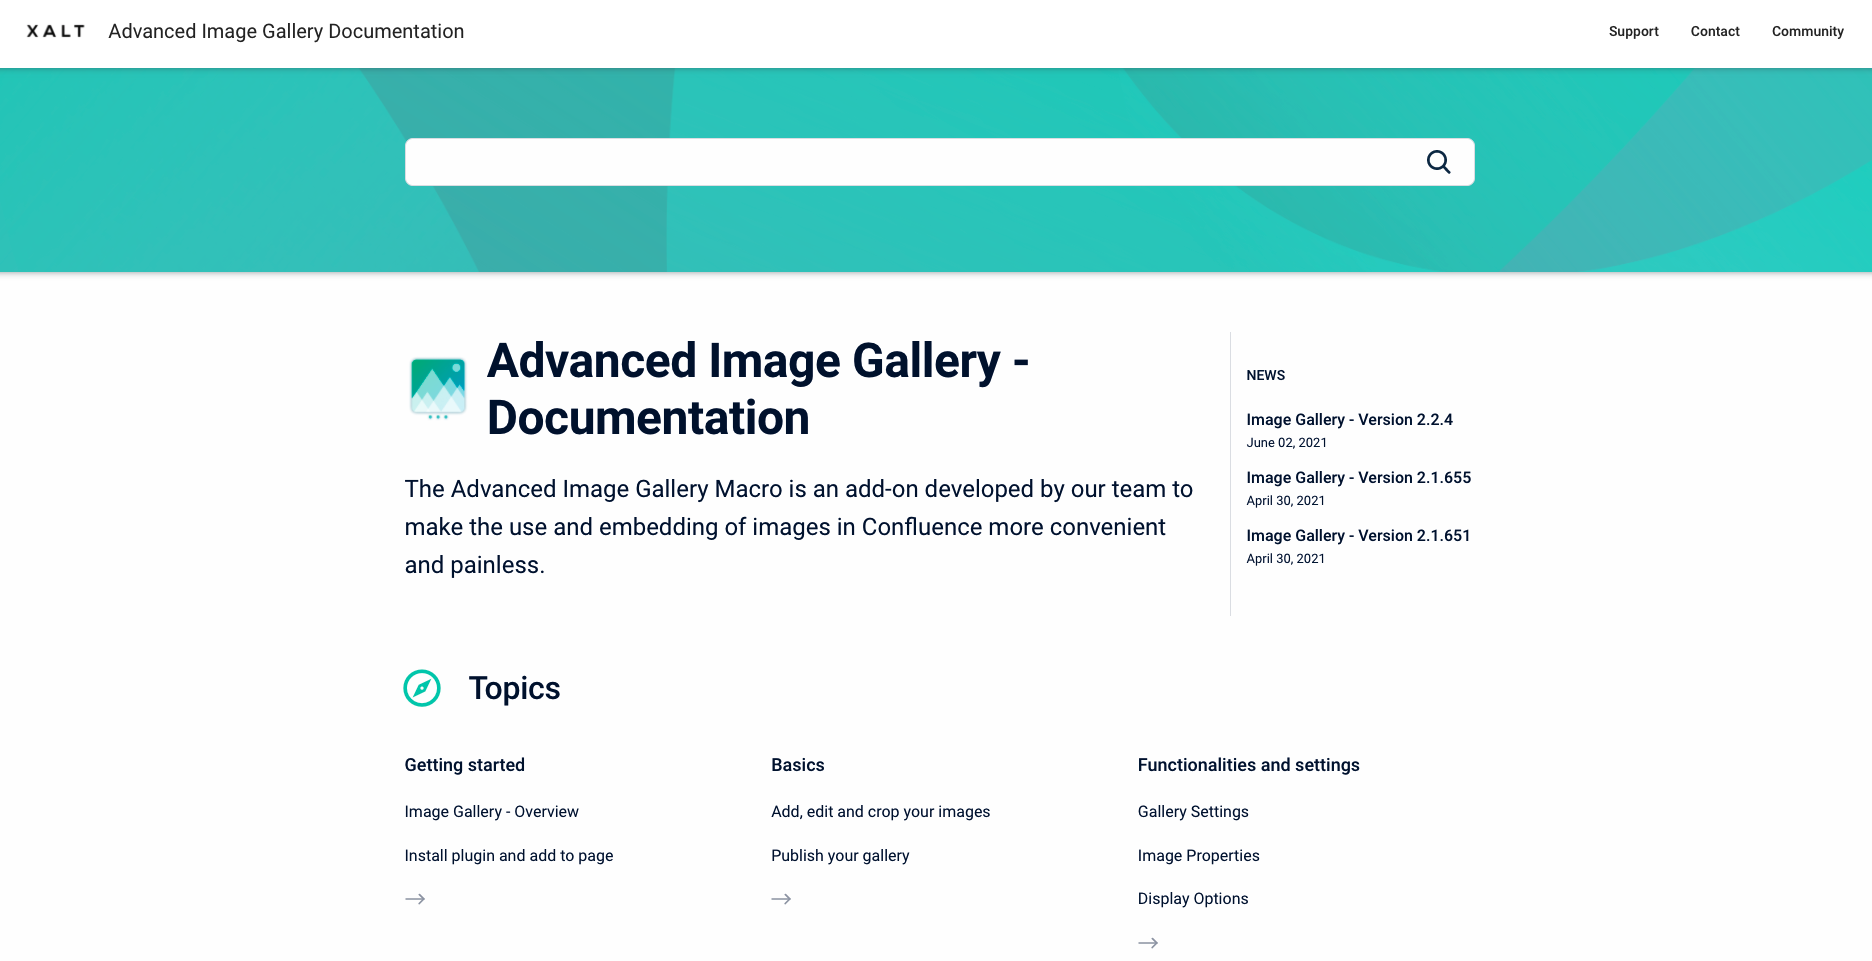 Documentation in the Confluence Help Center